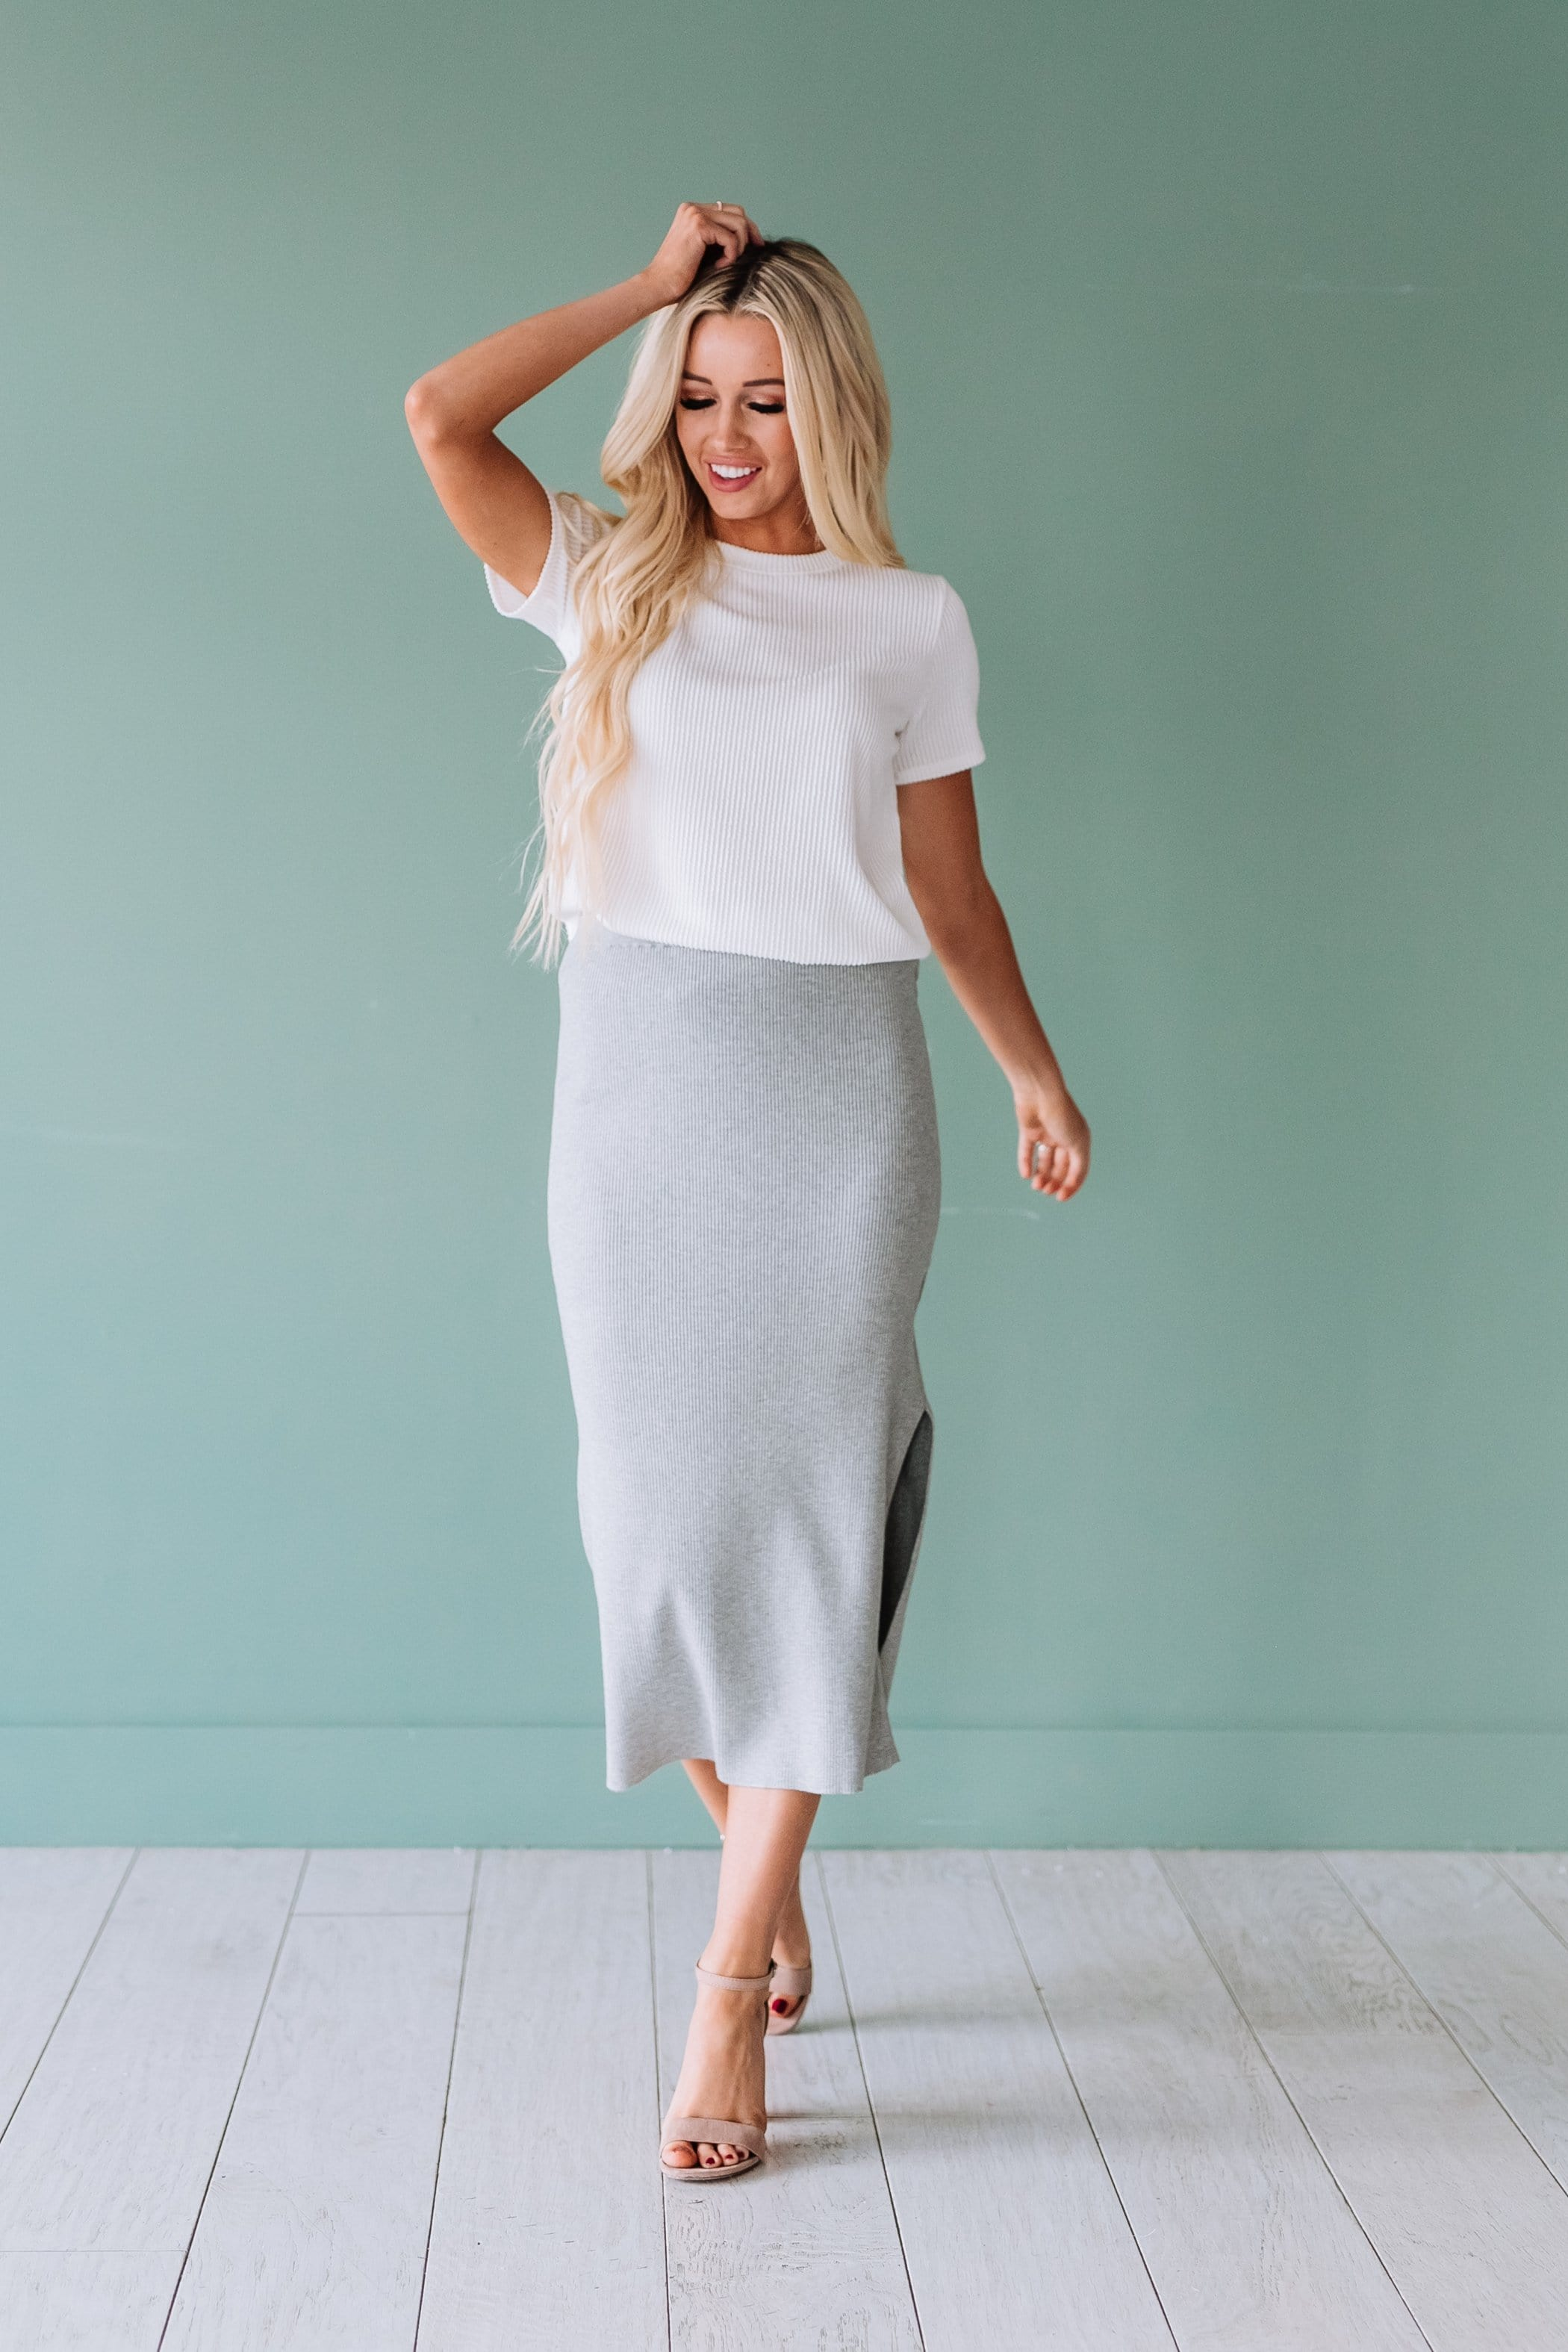 The Marana Rib Knit Pencil Skirt in Black and Grey